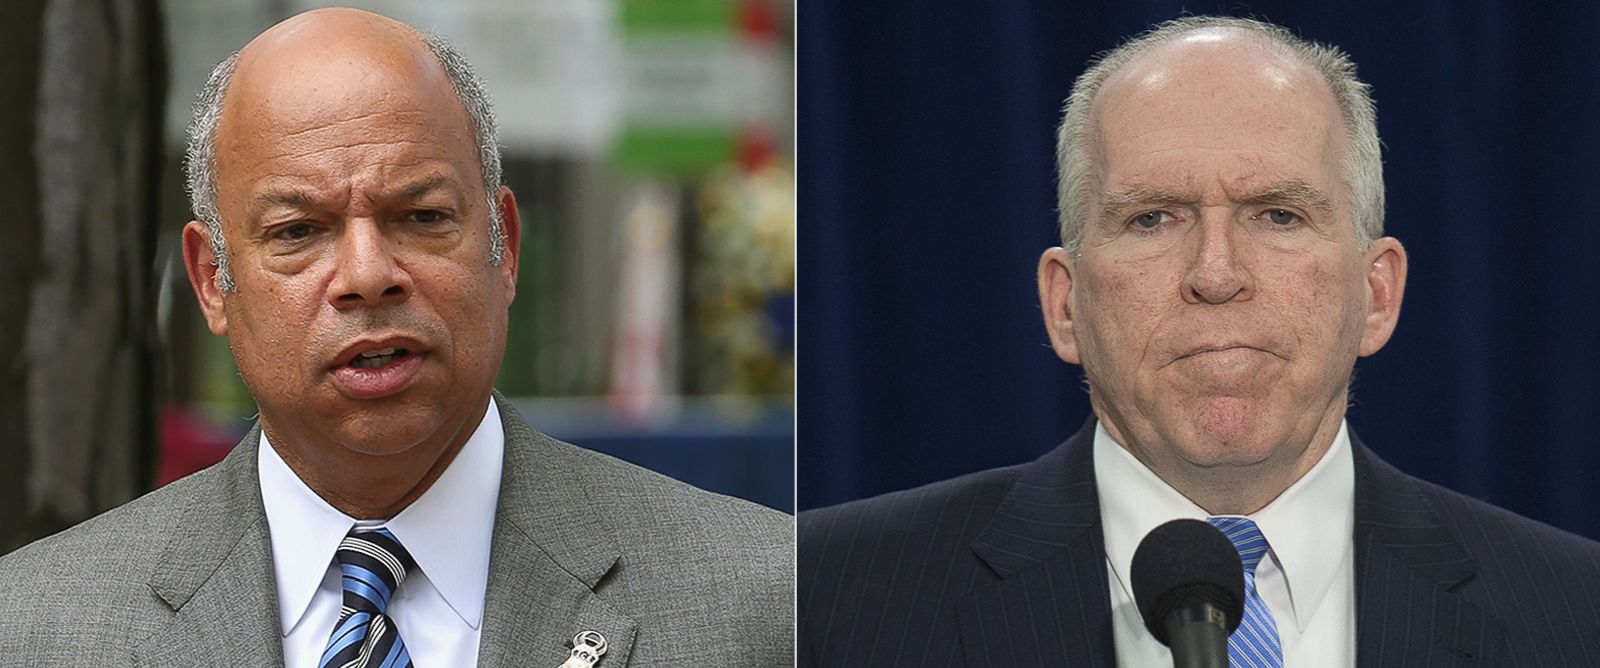 PHOTO: Pictured from left, Jeh Johnson, Secretary of Homeland Security, and John Brennan, CIA Director.